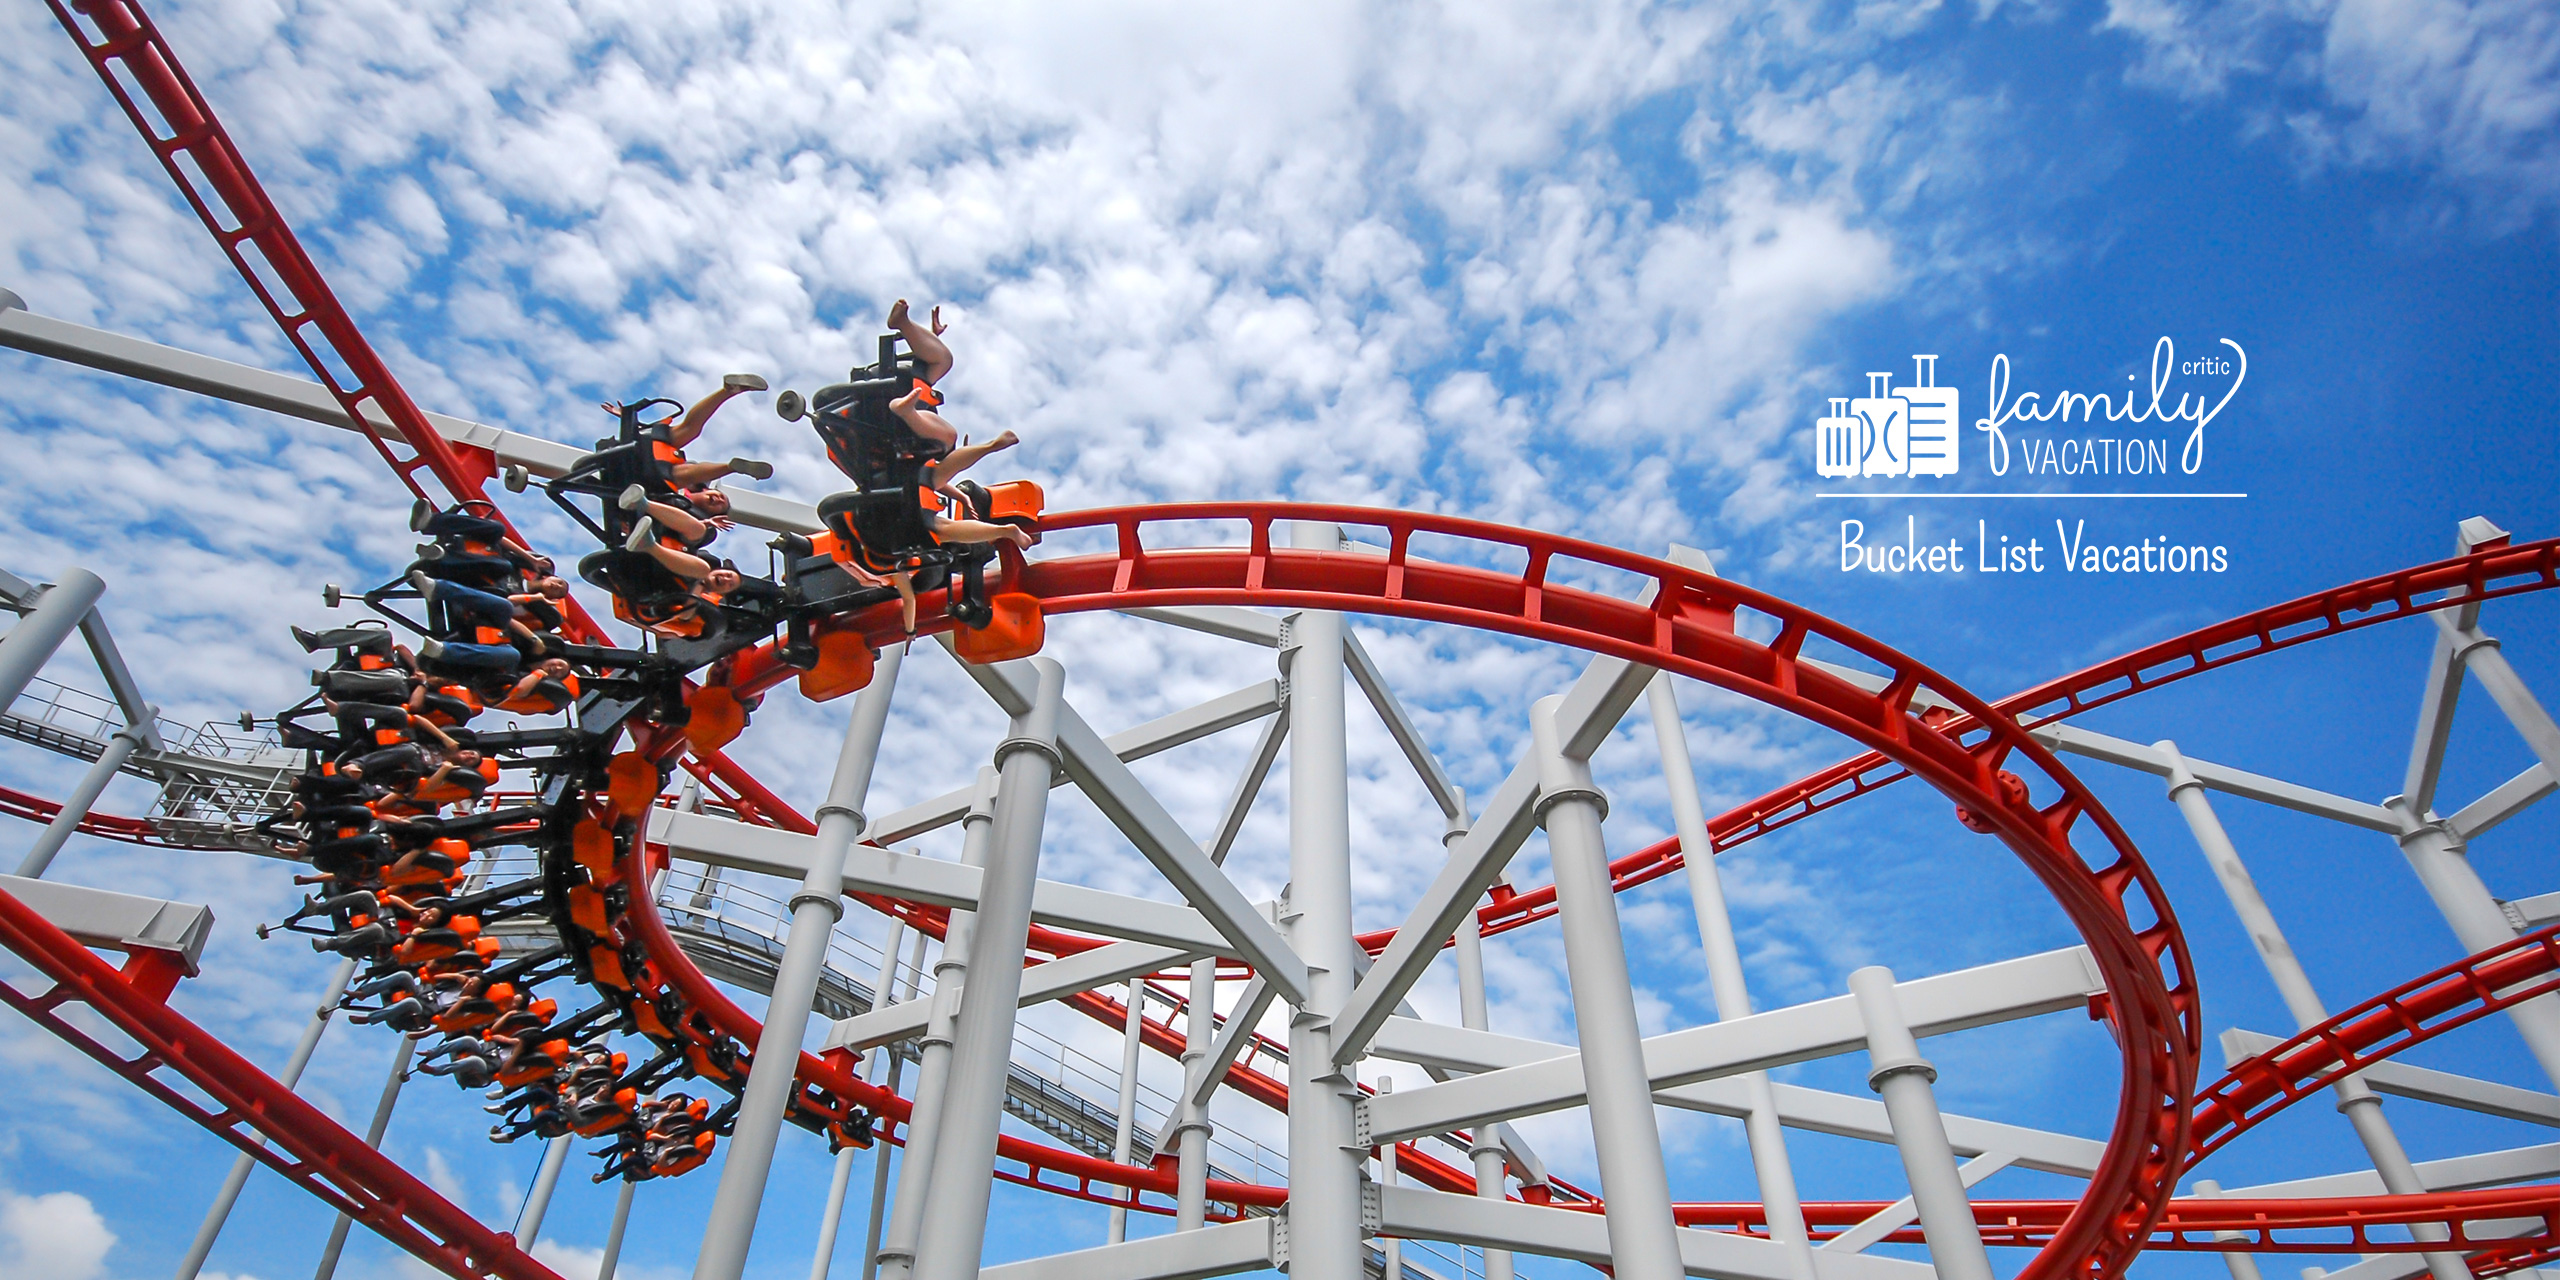 Rollercoaster against blue sky; Courtesy SIHASAKPRACHUM/Shutterstock